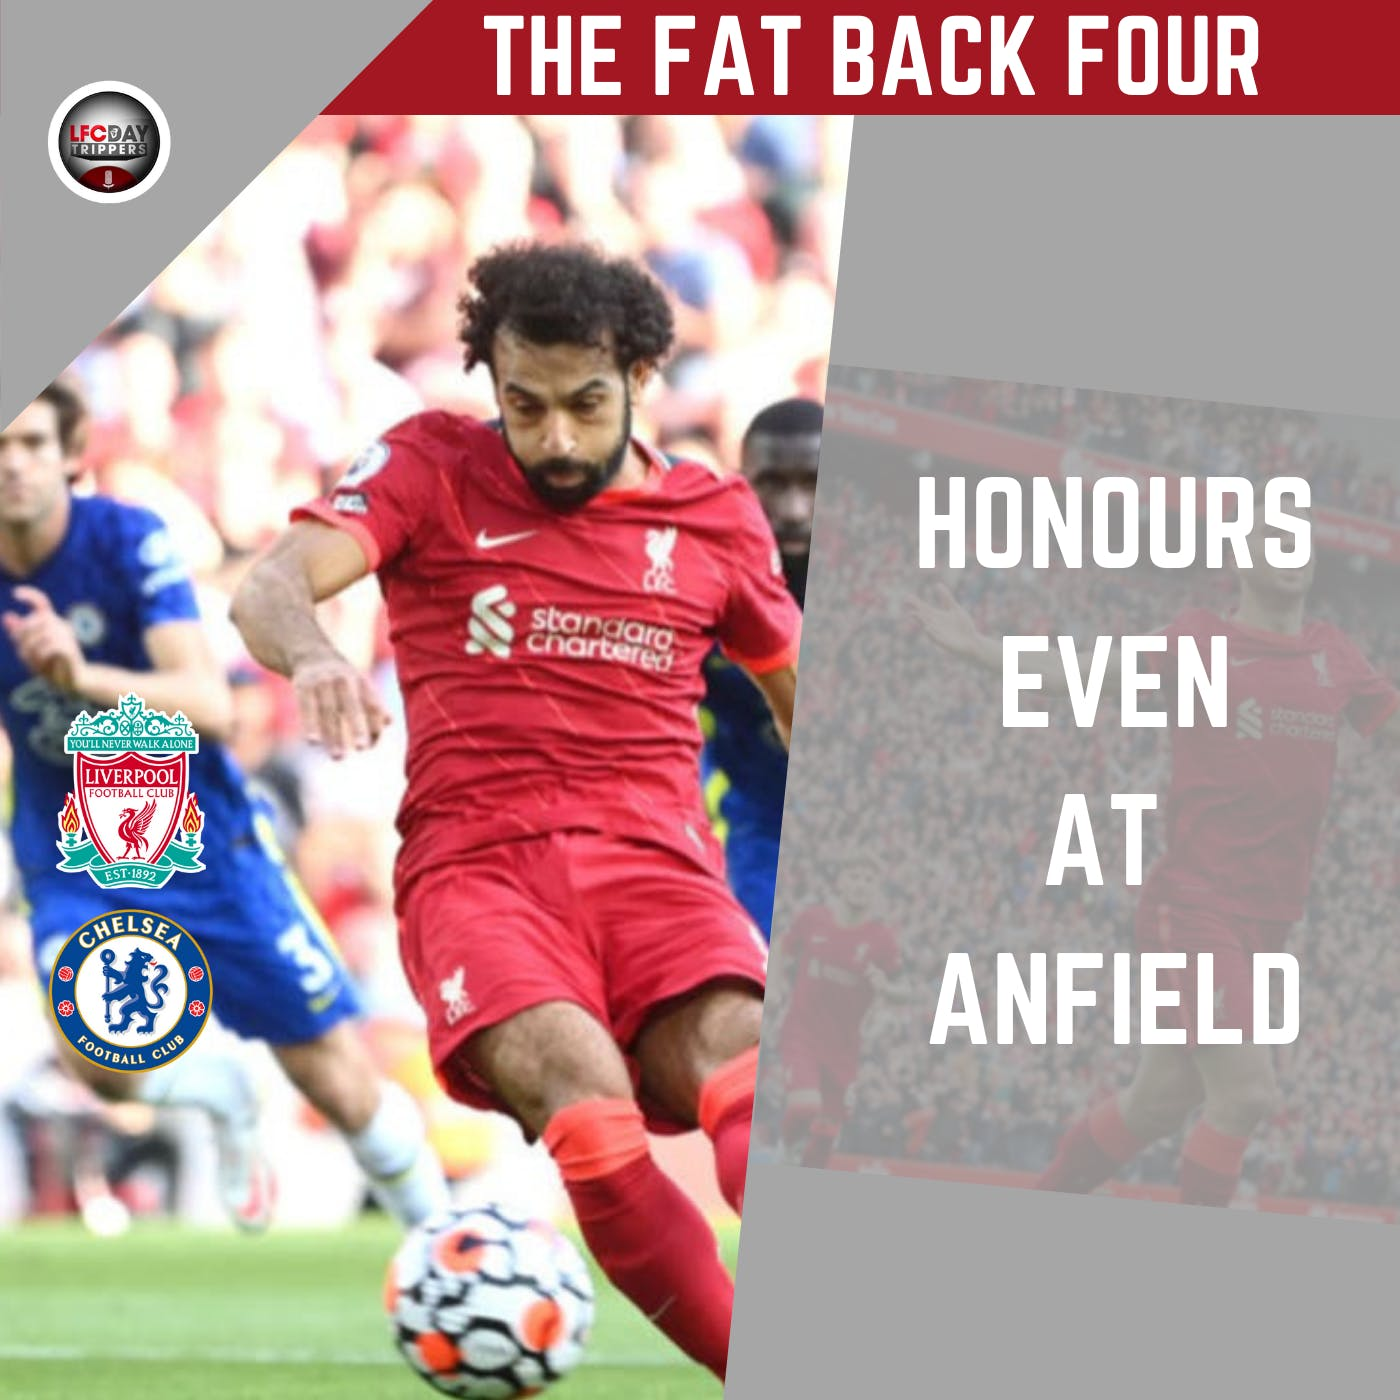 Liverpool and Chelsea Draw | 1 - 1 at Anfield | FB4